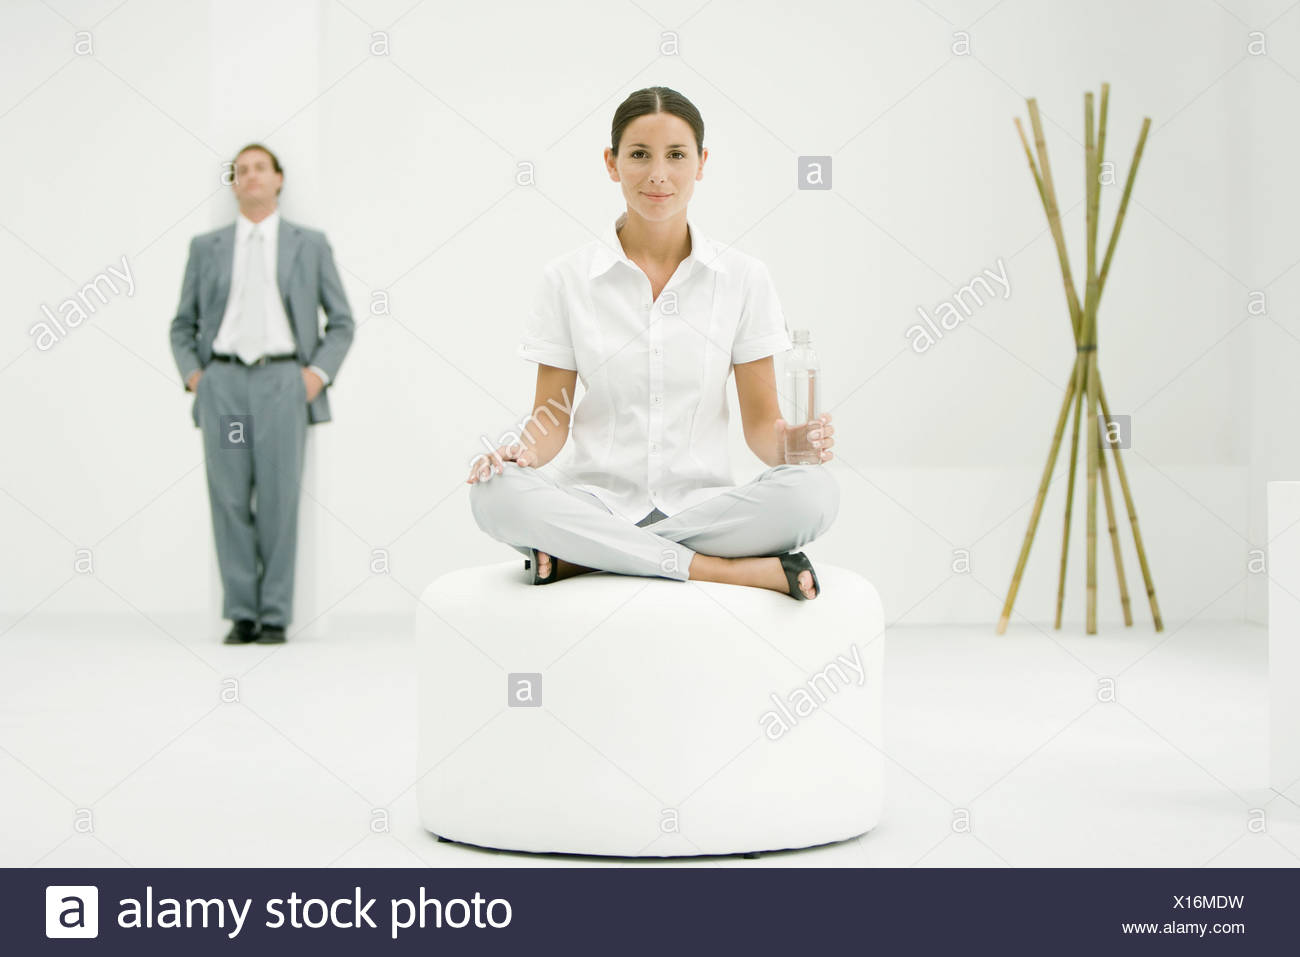 Professional woman sitting on ottoman, holding water bottle, businessman and bamboo in background Stock Photo